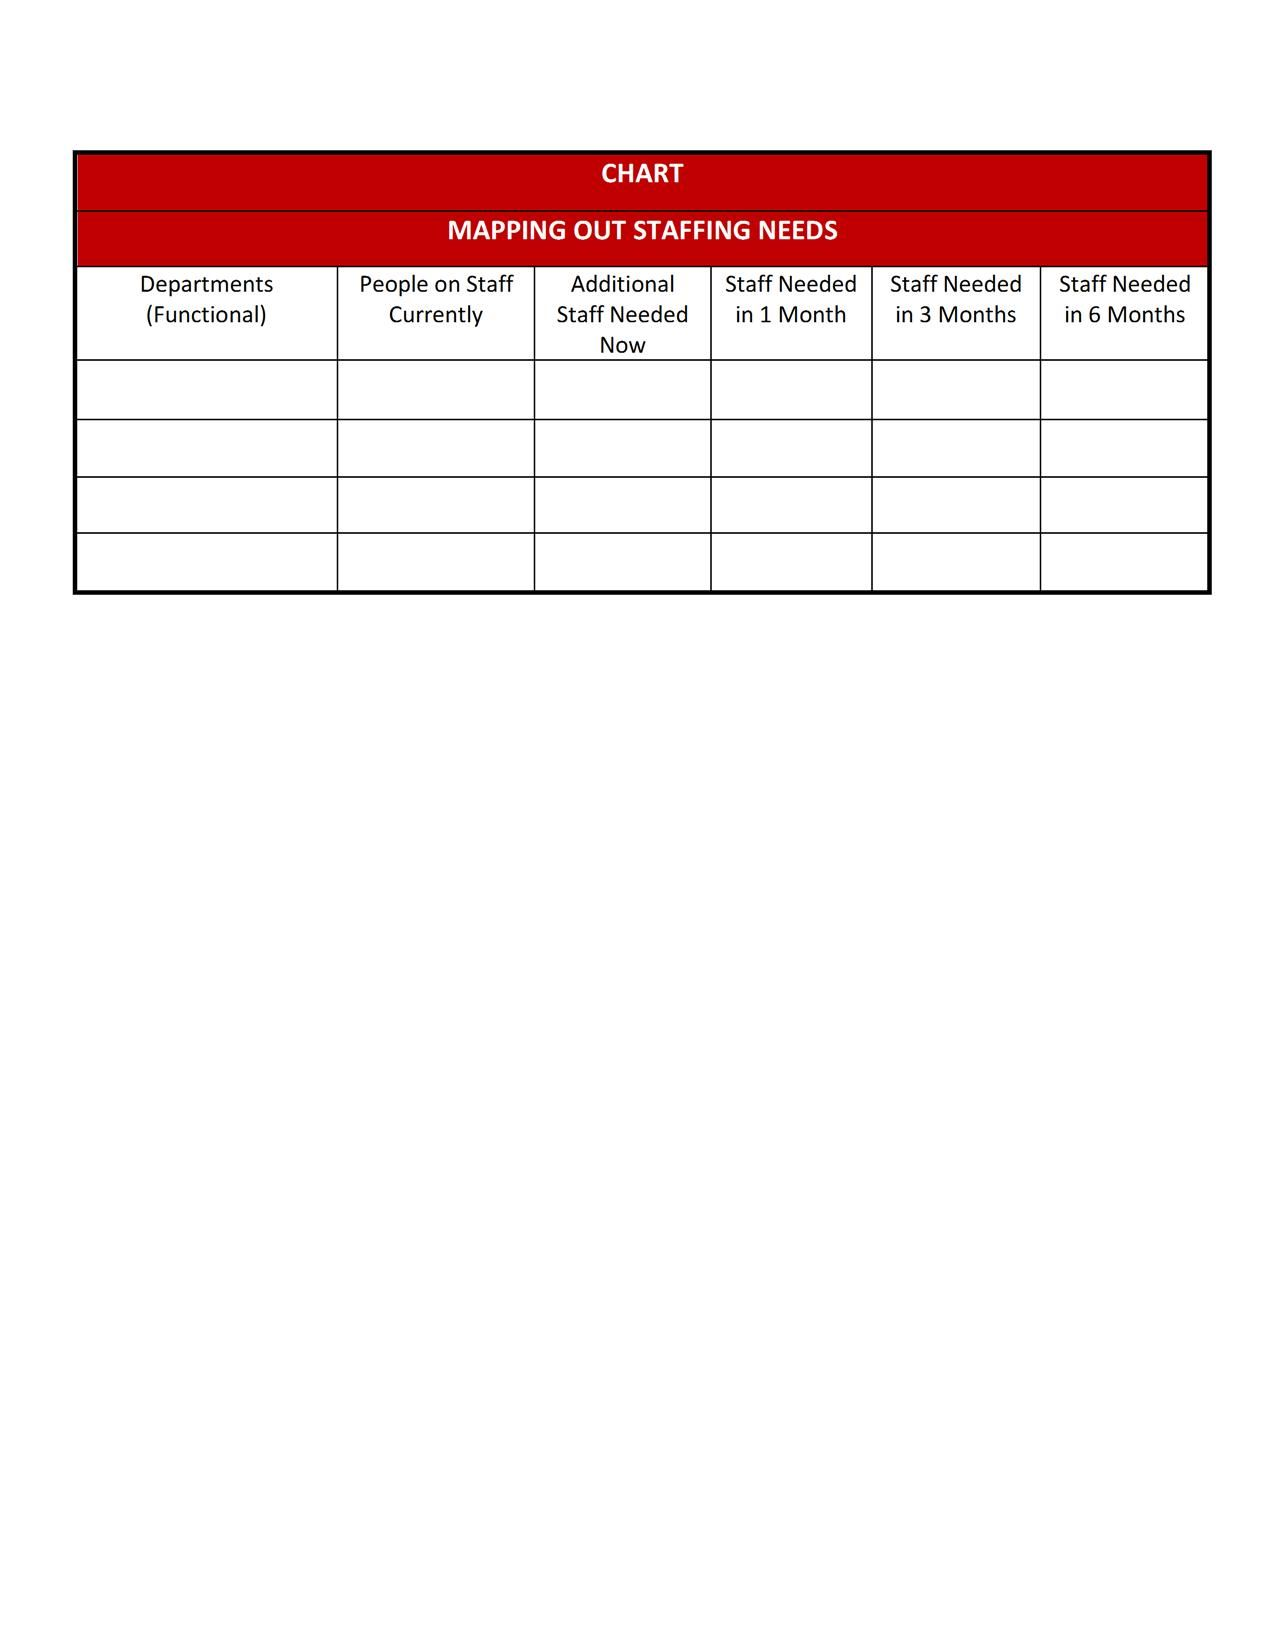 Form Chart Mapping Out Staffing Needs  Human Resource